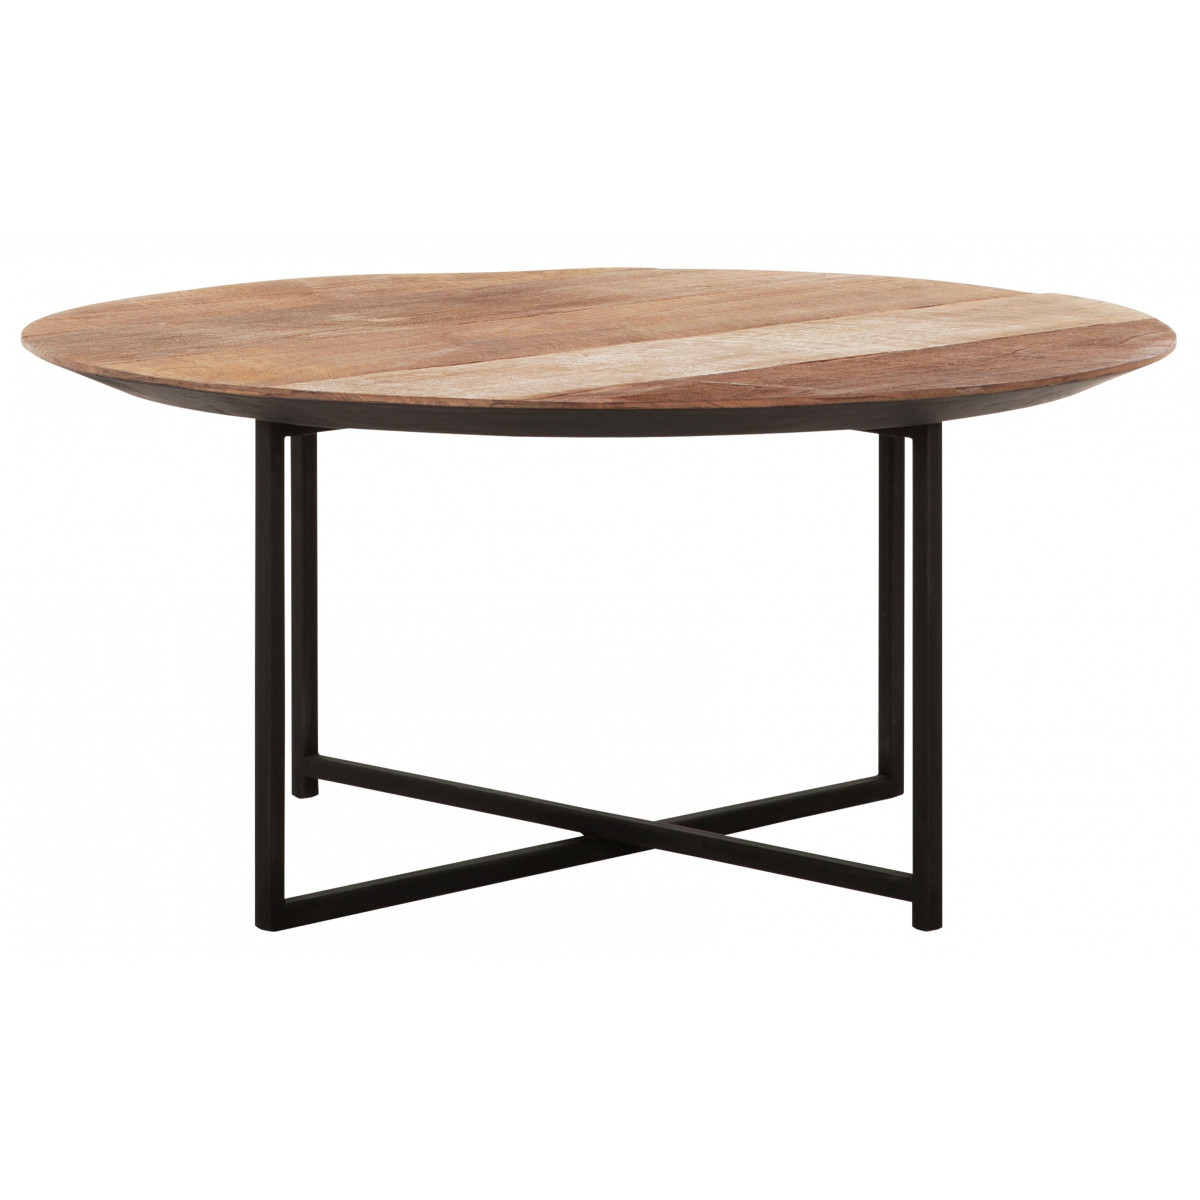 Cosmo Round Coffee Table In Teak And Iron Dtp Home Tentation